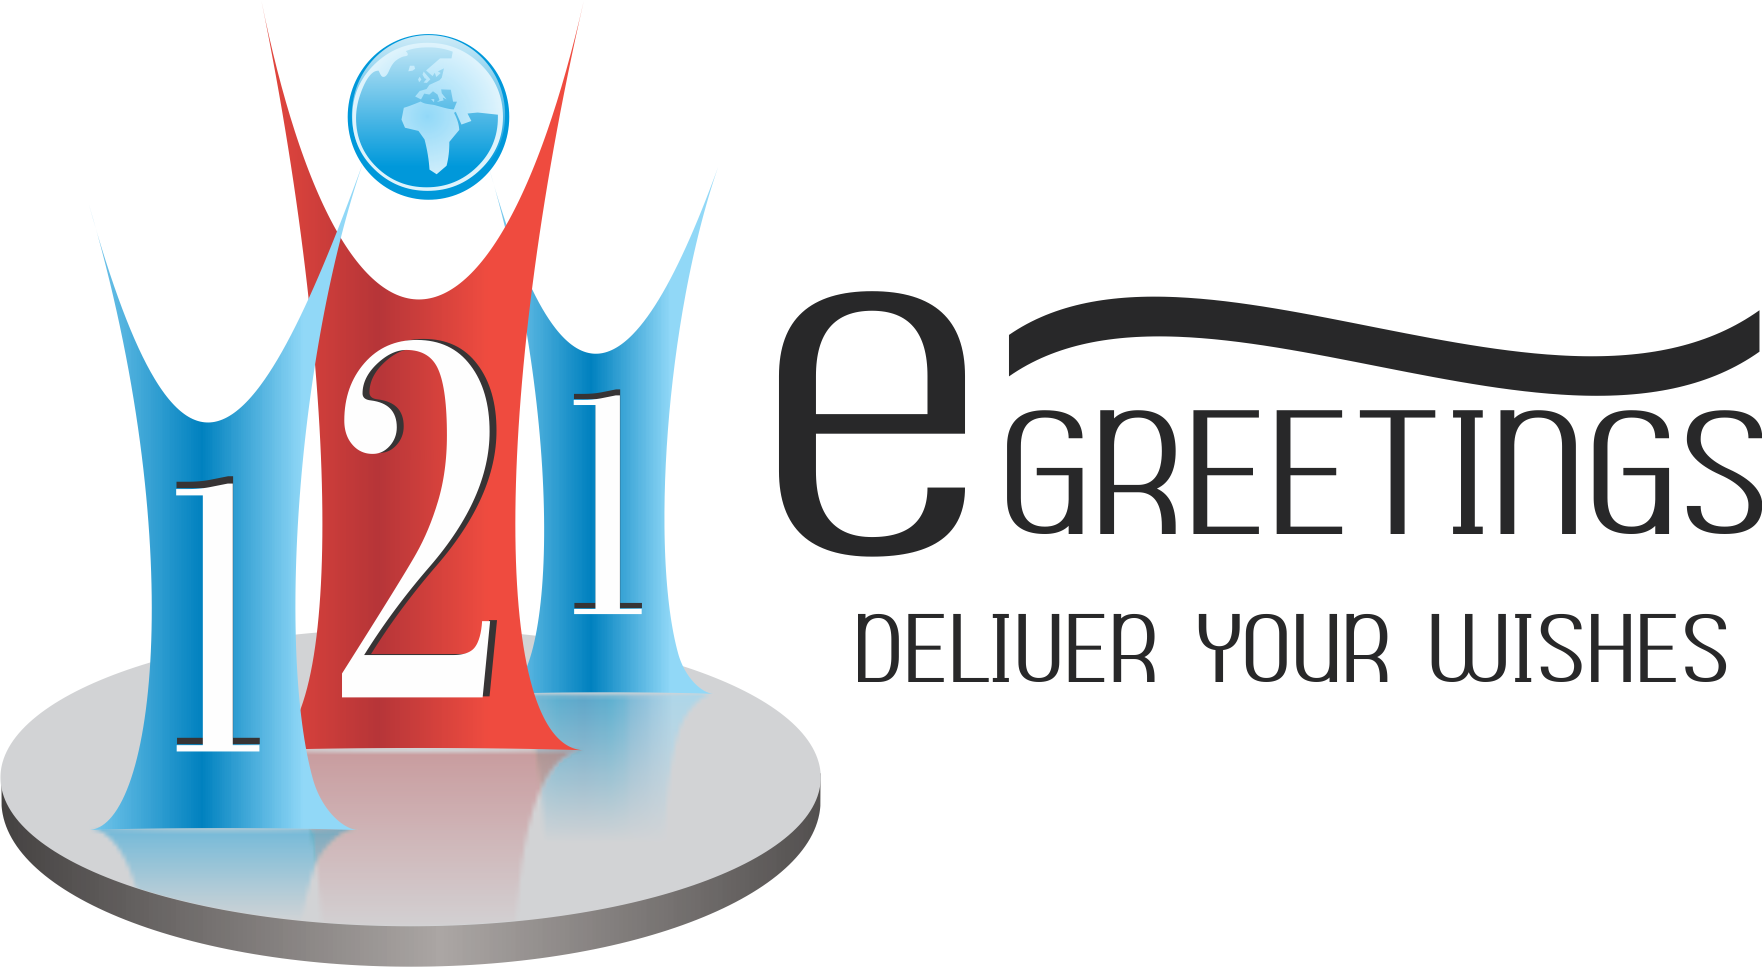 121 E Greetings - logo